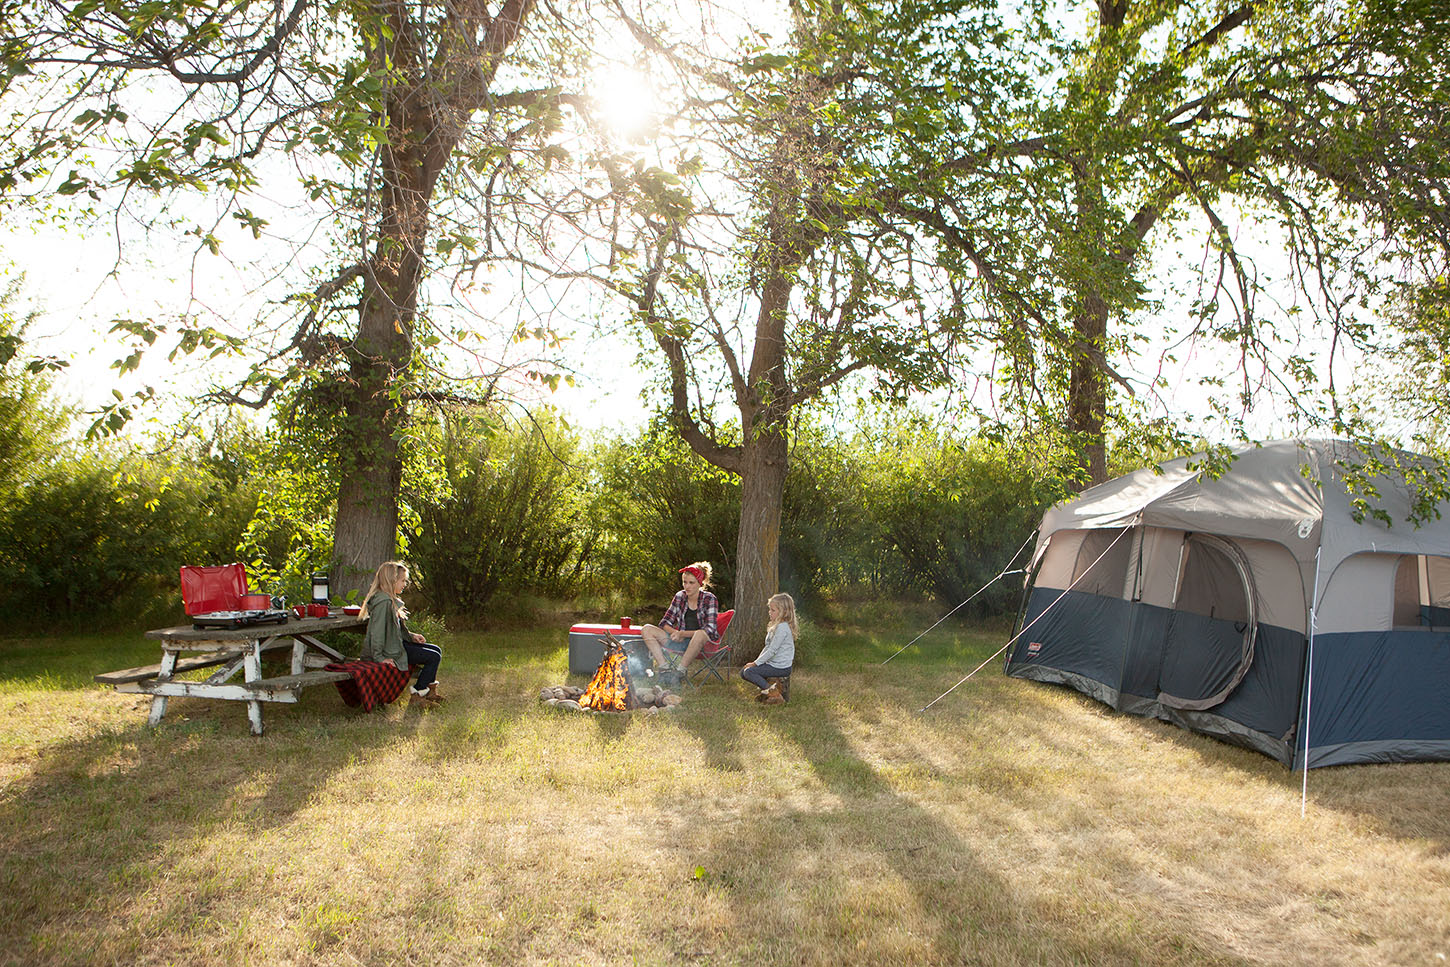 Getting outside doesn't have to mean adventuring far from home. Make special memories by planning a backyard camping adventure this summer!